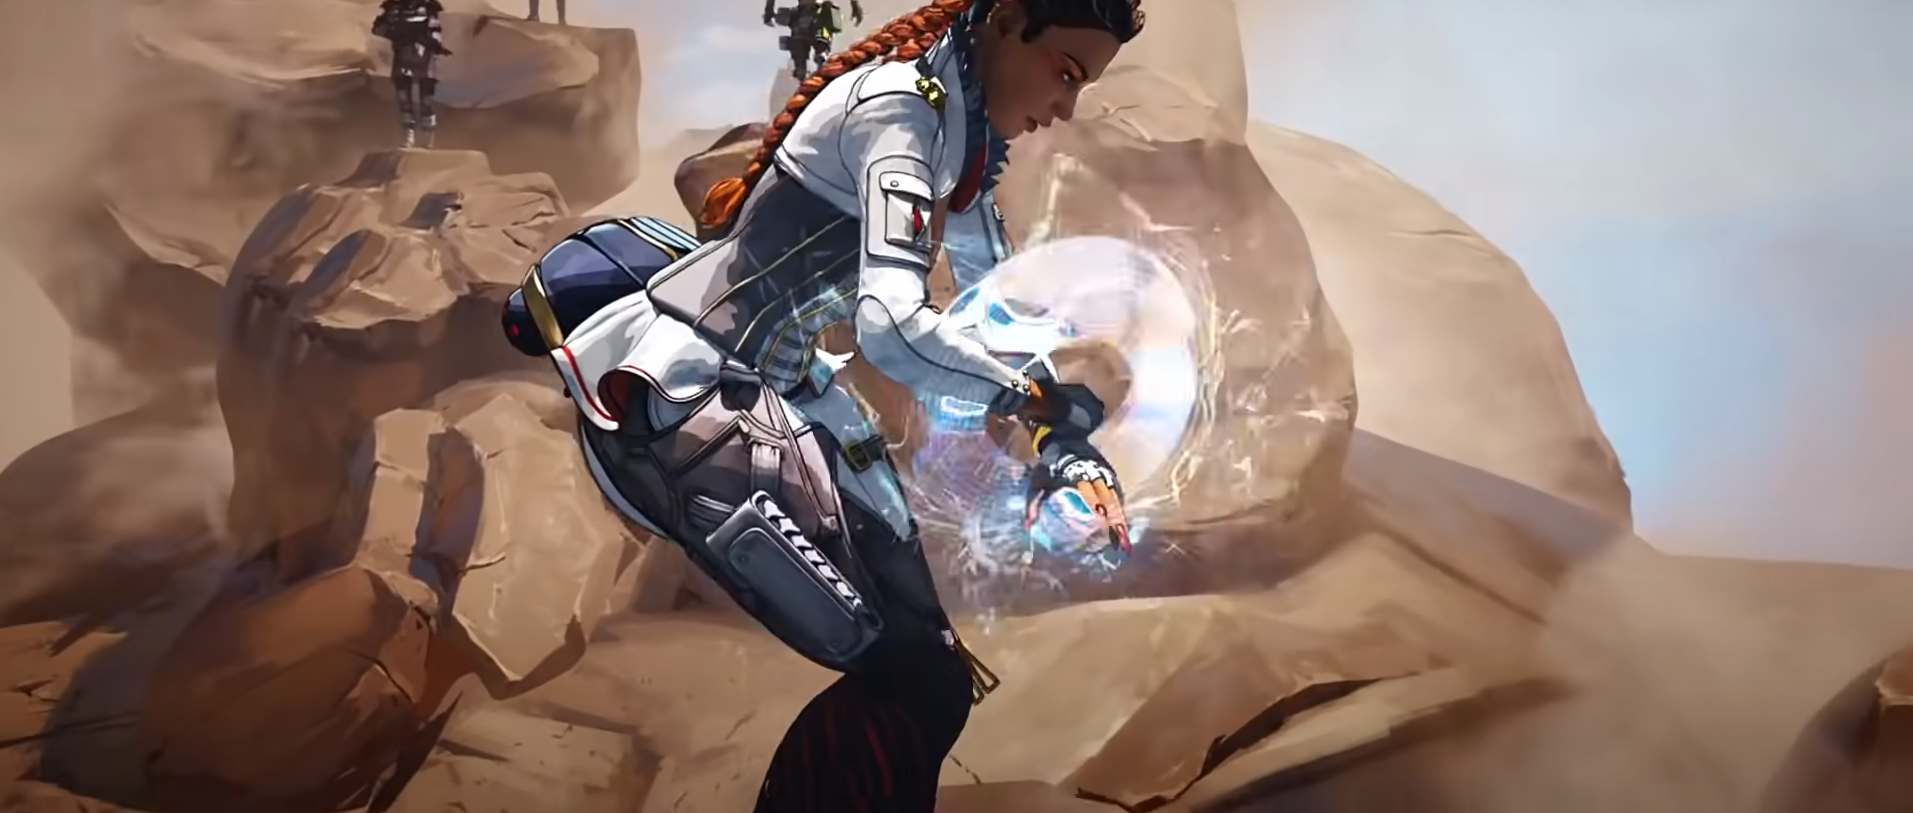 Loba is reportedly still having issues with her tactical ability after the latest Apex Legends patch.